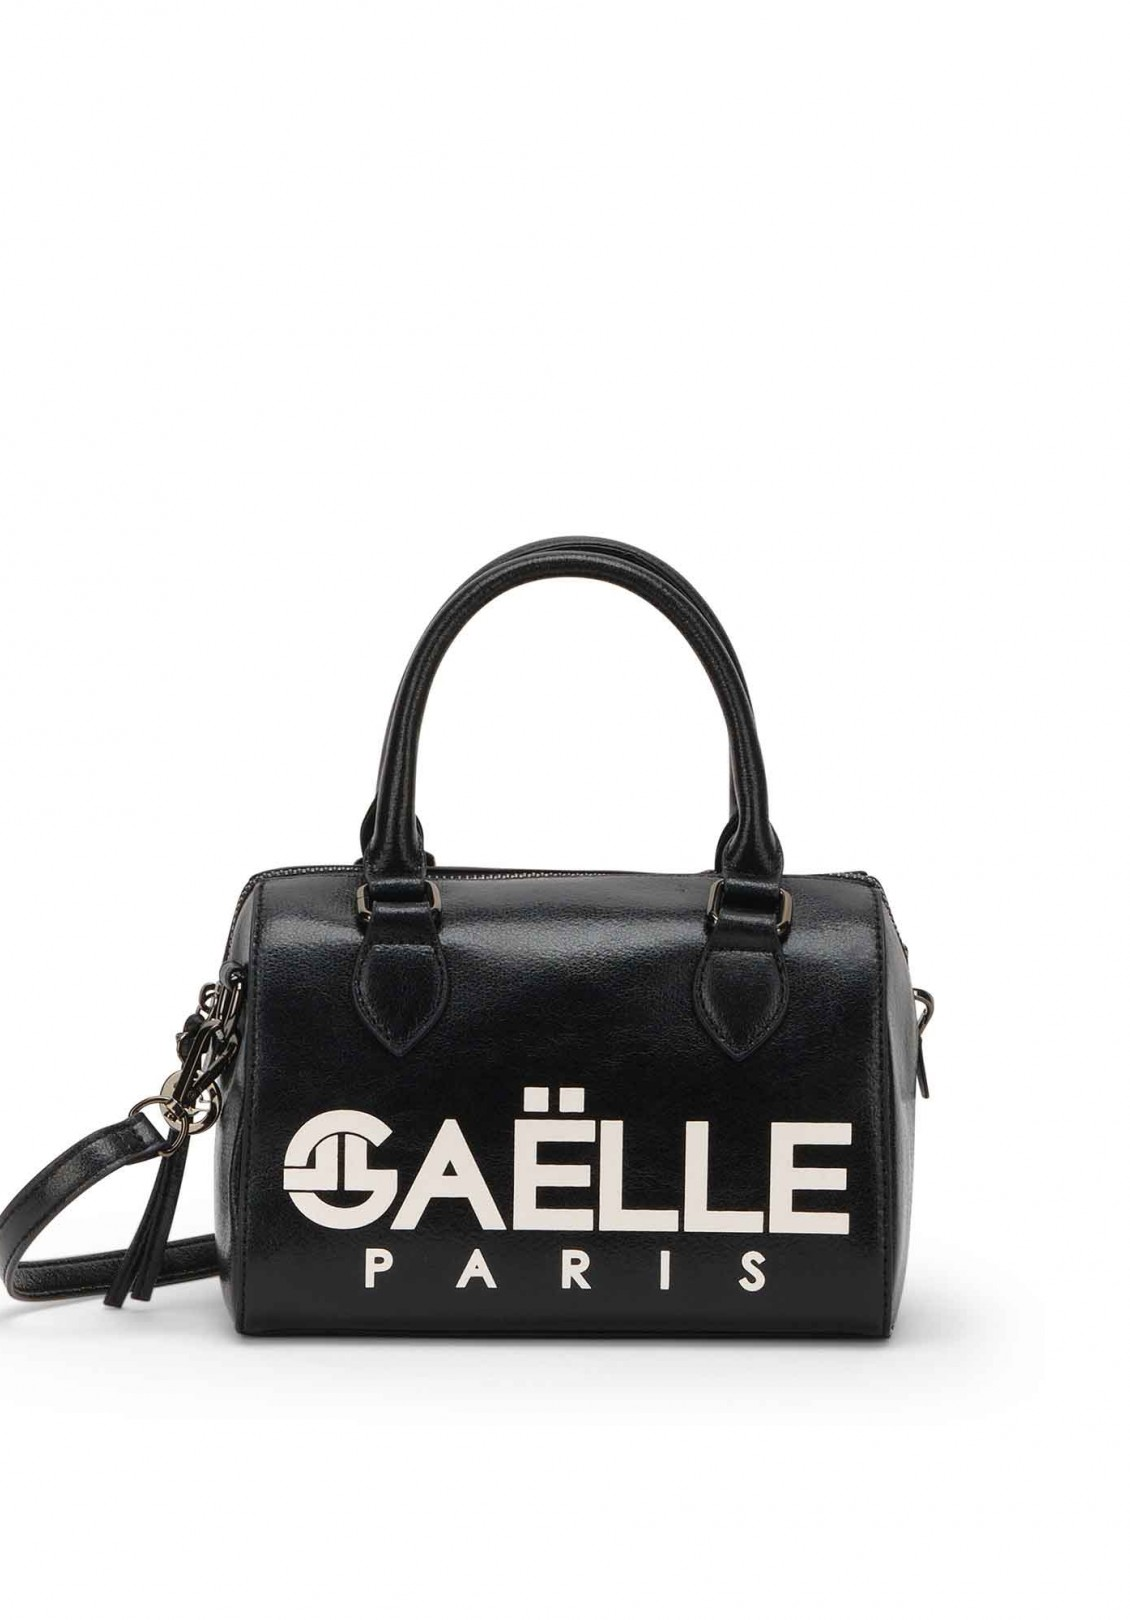 HAND BAG - GBDA1864 - GAELLE PARIS